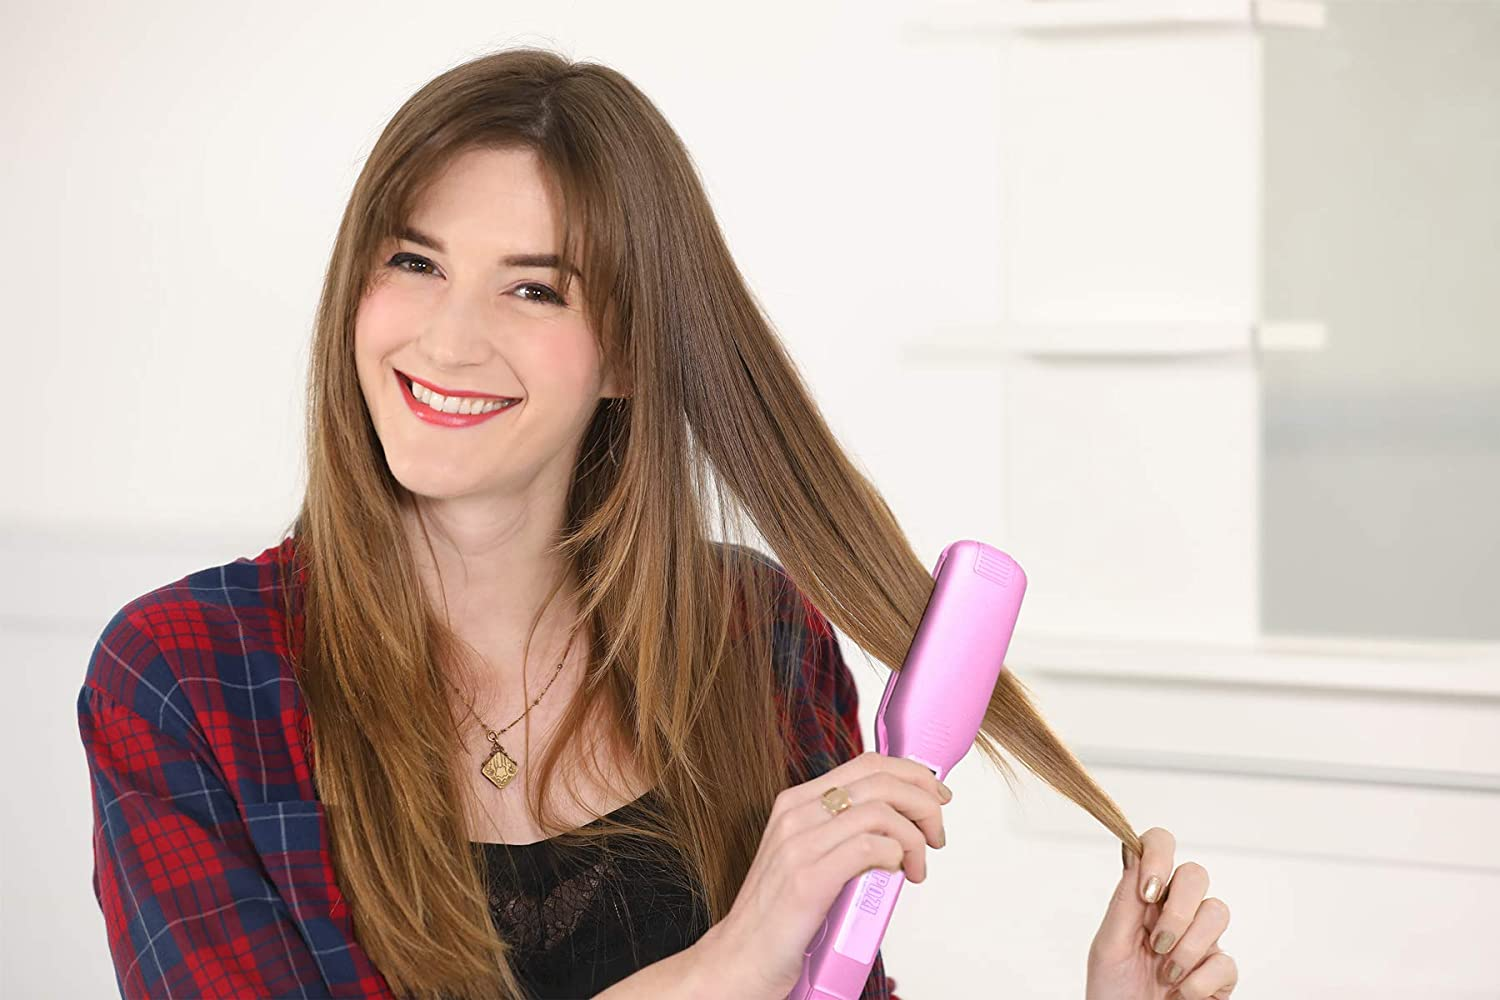 KIPOZI professional hair straightener flat iron with Digital Display,Heats Up fast.1.75 inch Wide Charming Pink